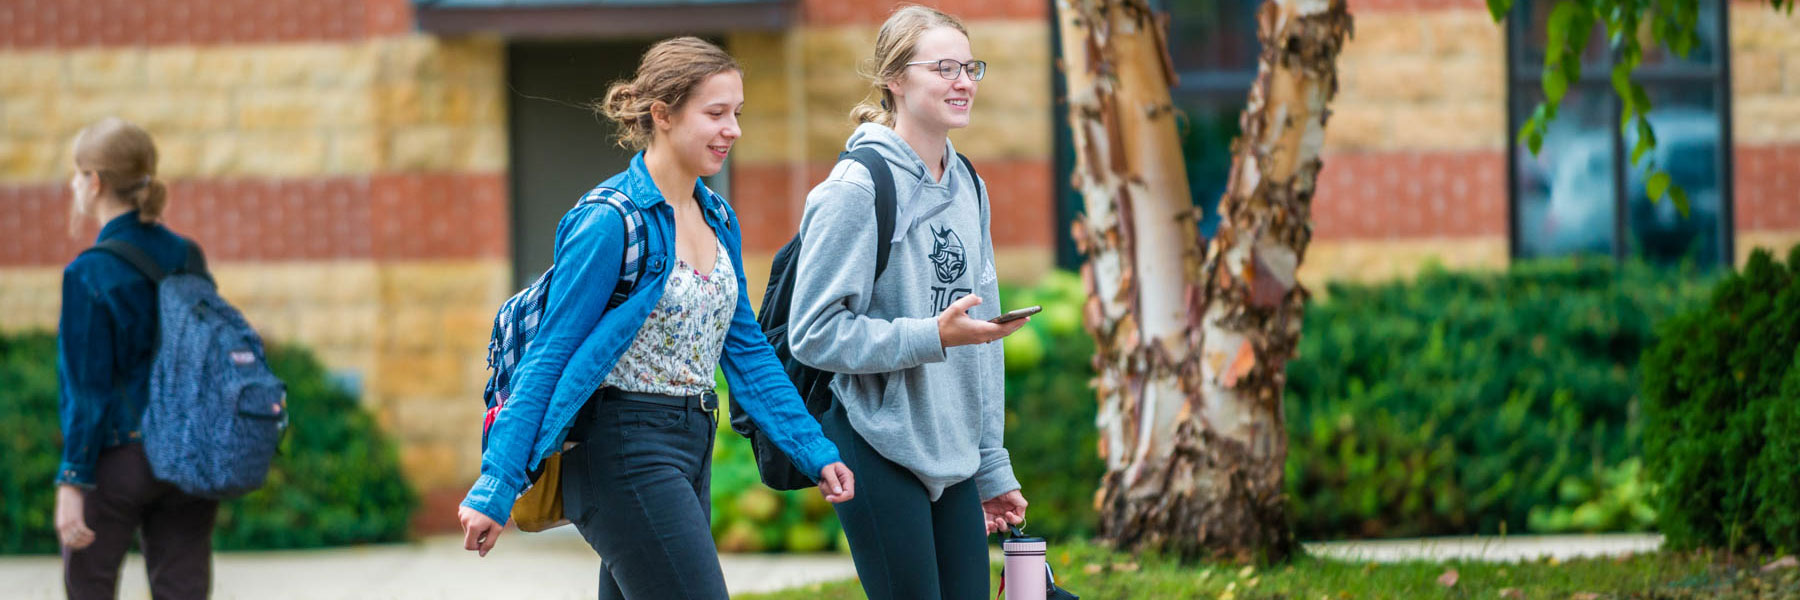 two female students talk outside while walking